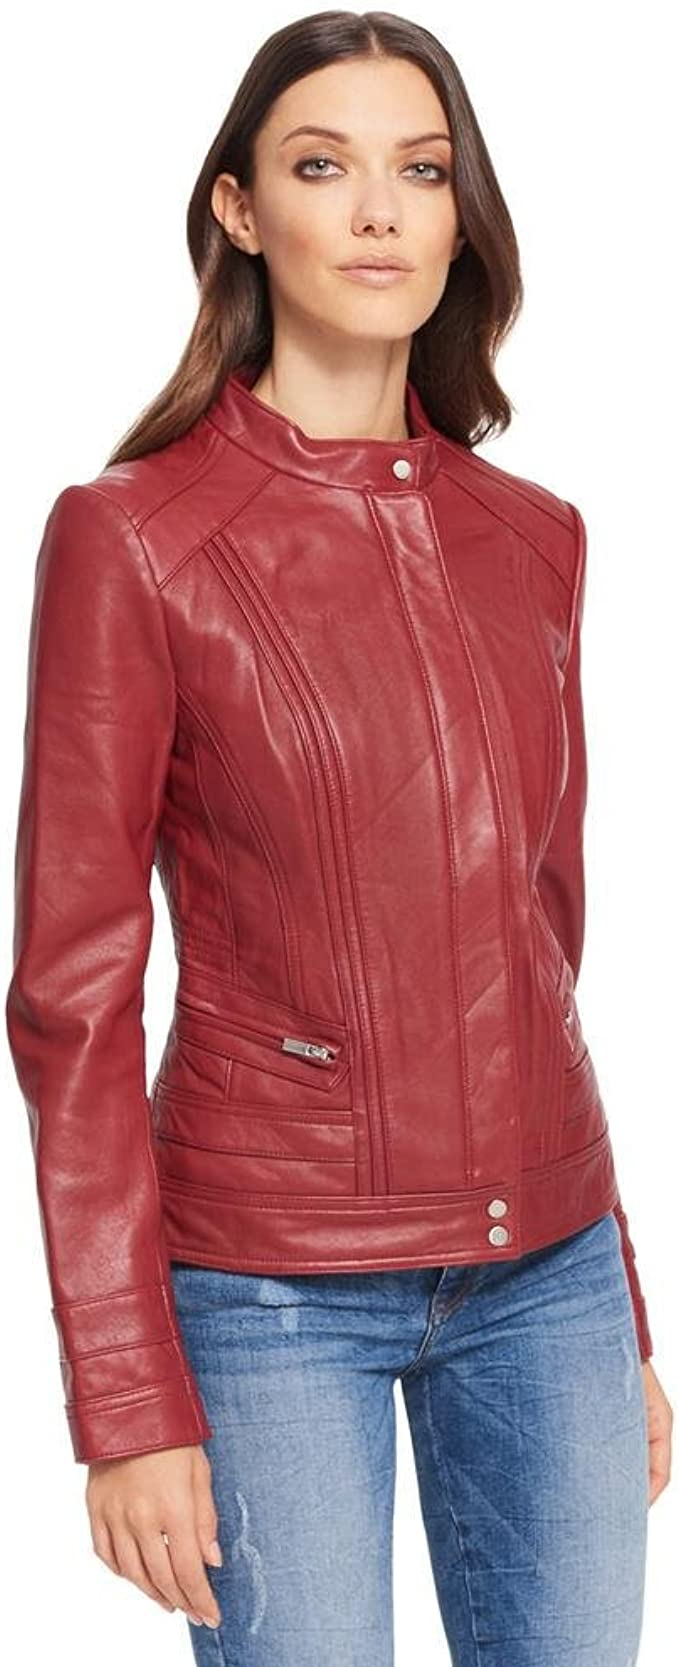 Ladies Real Leather Jacket Lamb Bright color Waist length Women Summer jacket